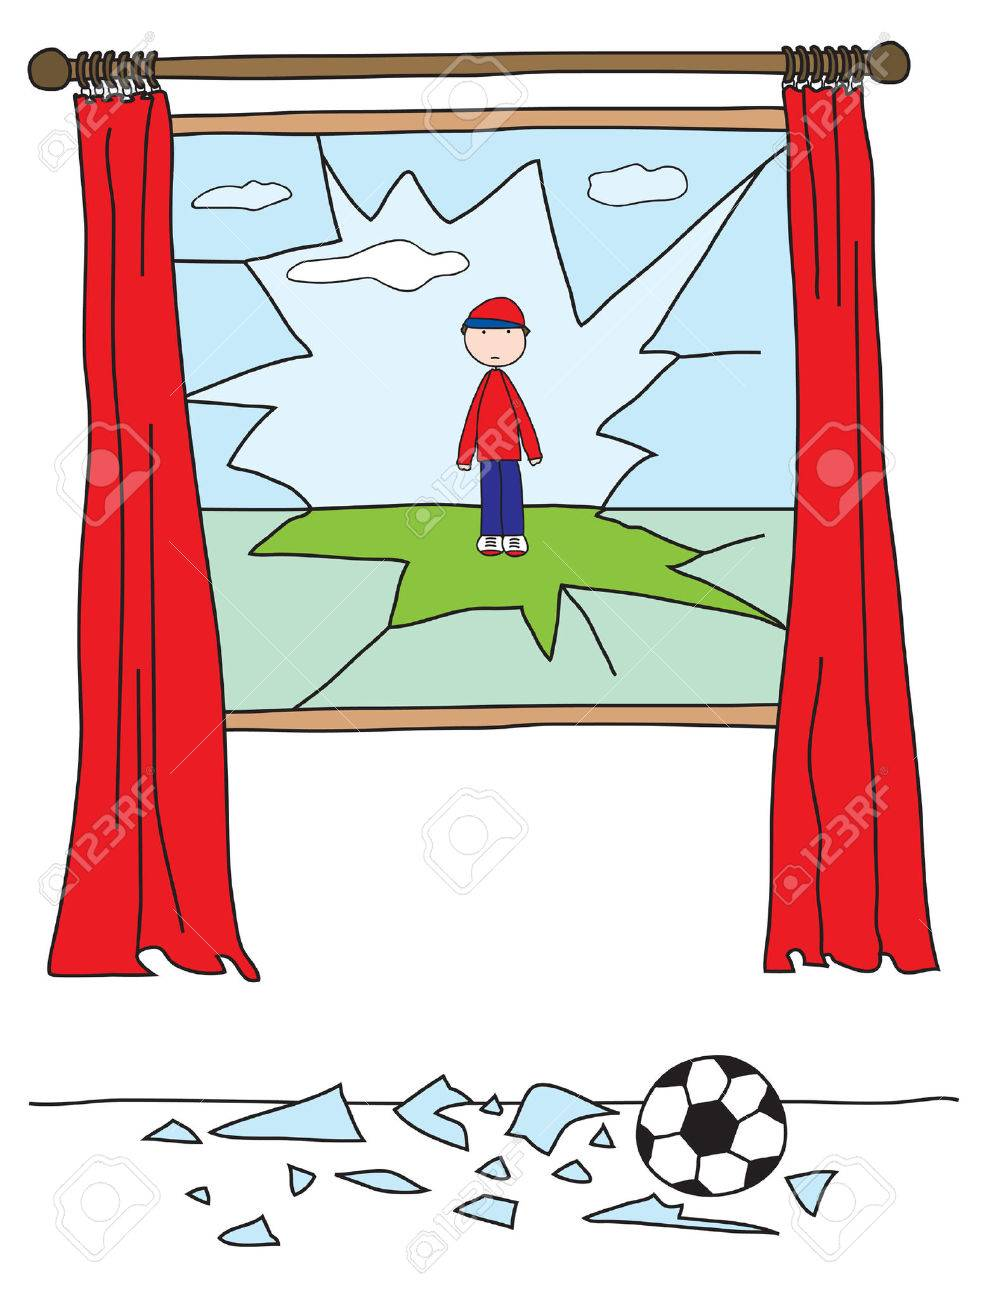 medium resolution of boy playing with a ball and breaking a window stock vector 2456409